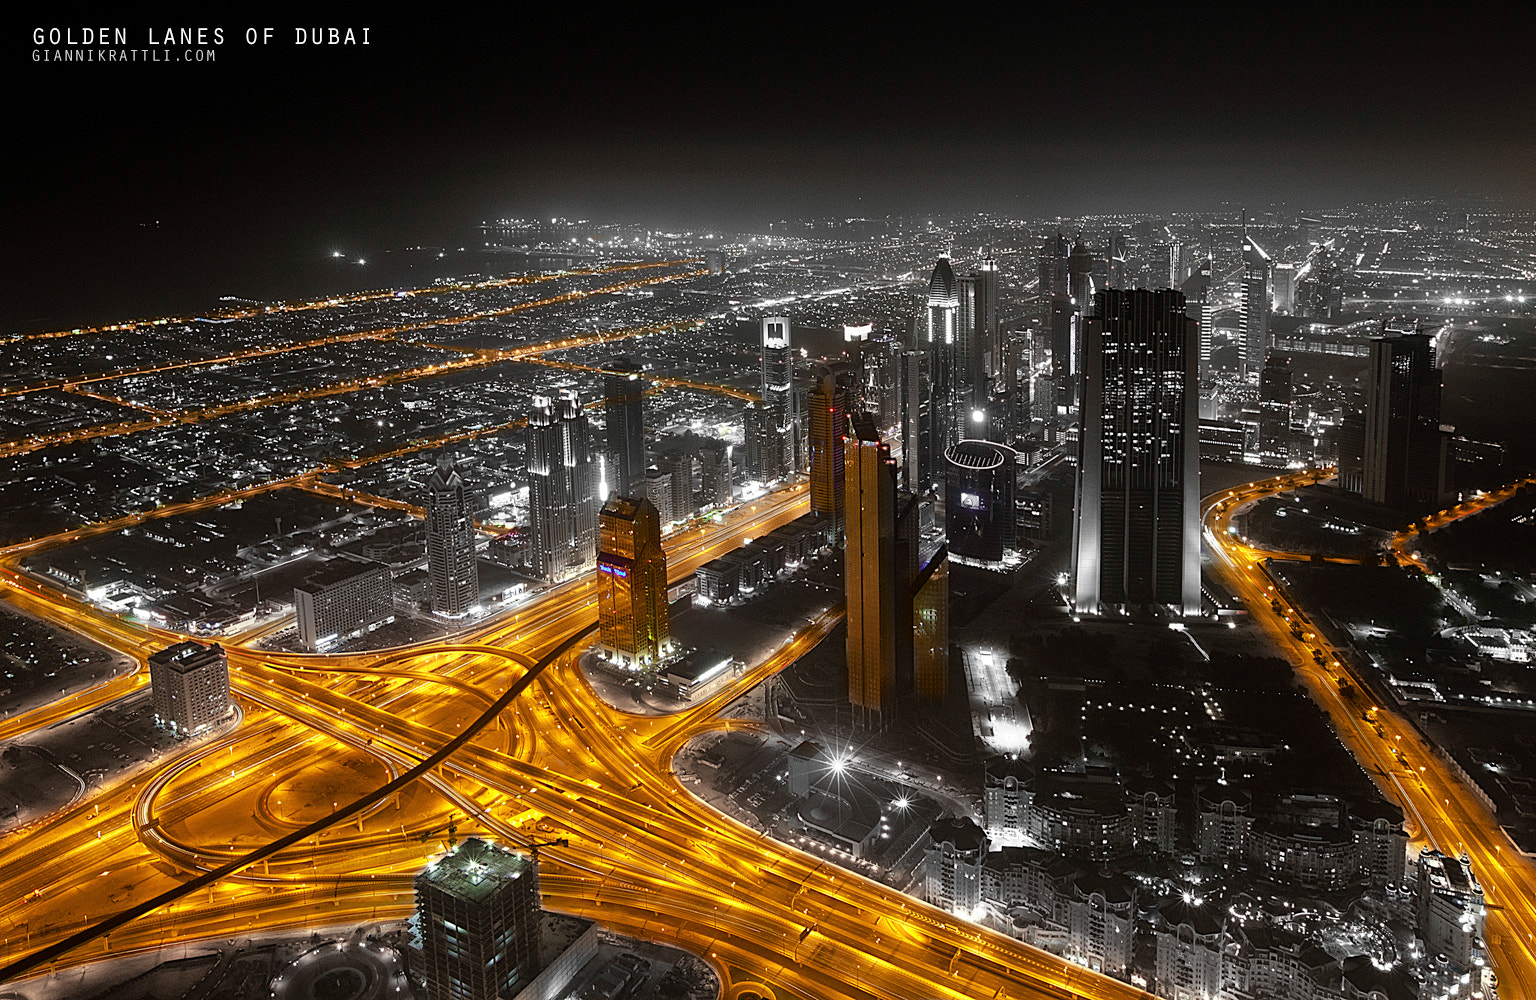 Photograph Golden Lanes of Dubai by Gianni Krattli on 500px